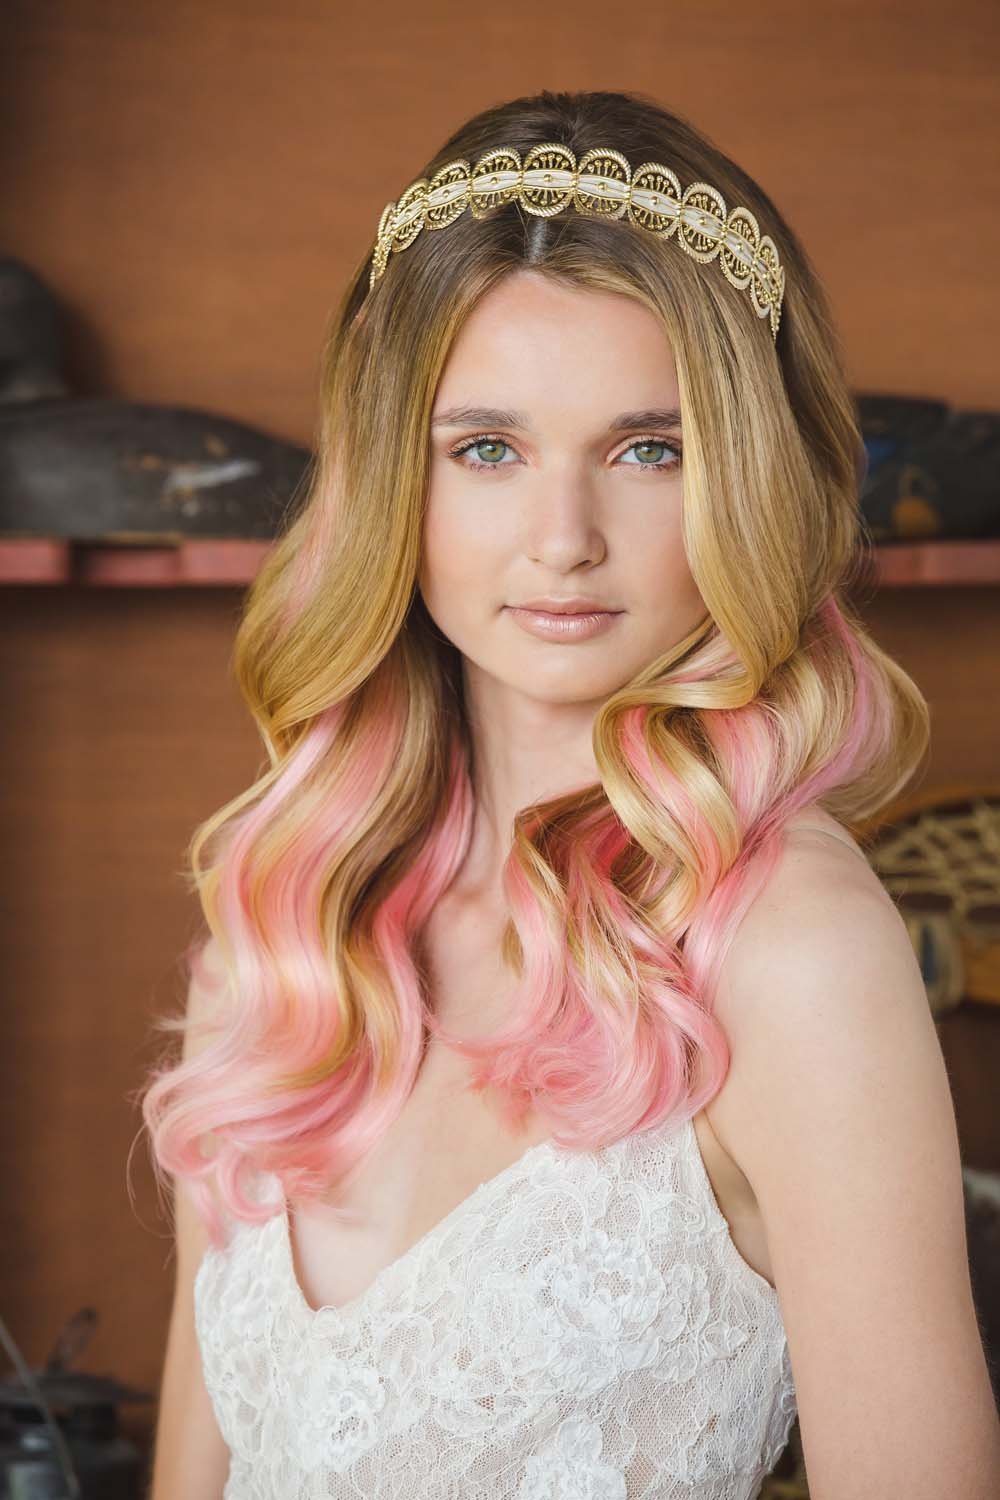 Br bridal headpieces montreal - The Prettiest Ways To Incorporate Crowns Into Your Bridal Hairstyle Weddingbells